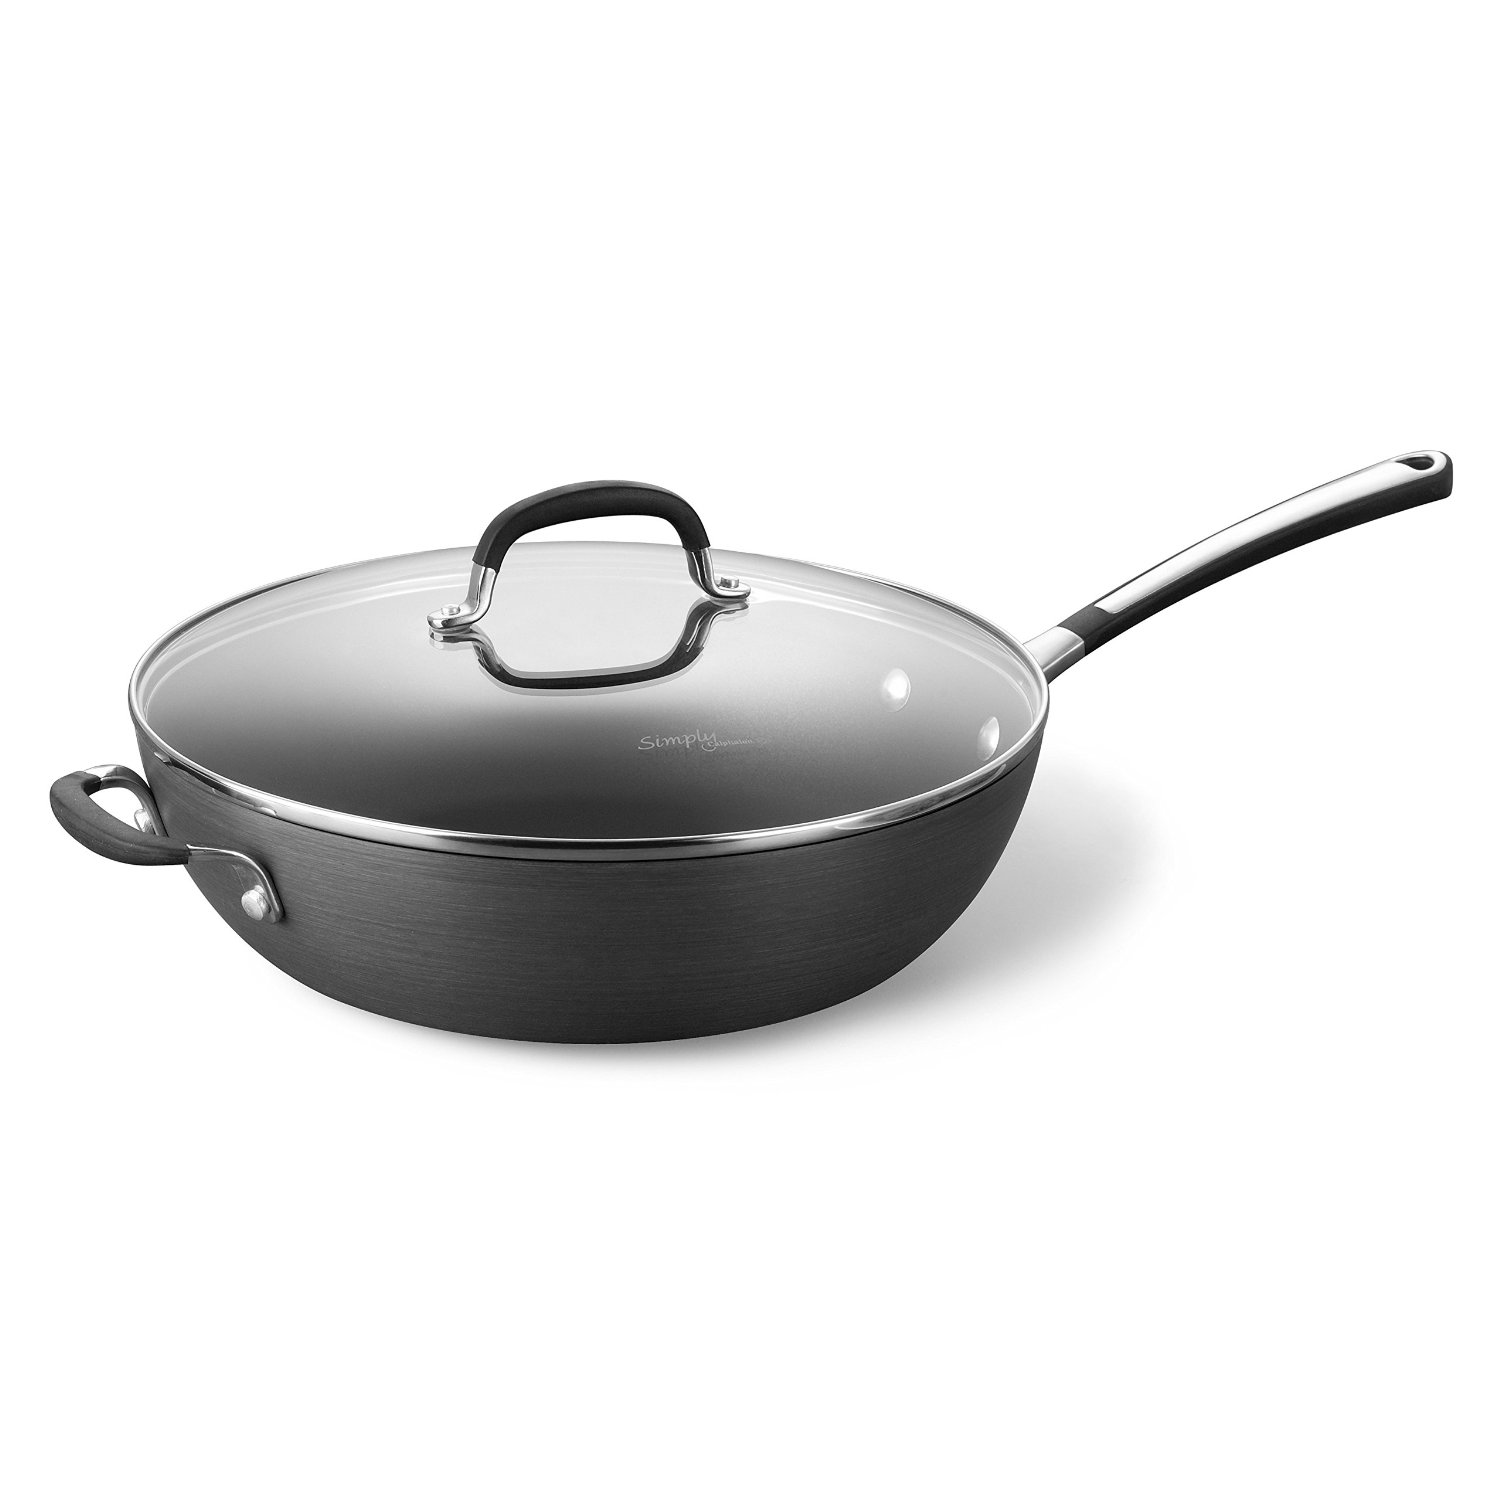 Calphalon Simply Easy System Nonstick Omelette Pan And